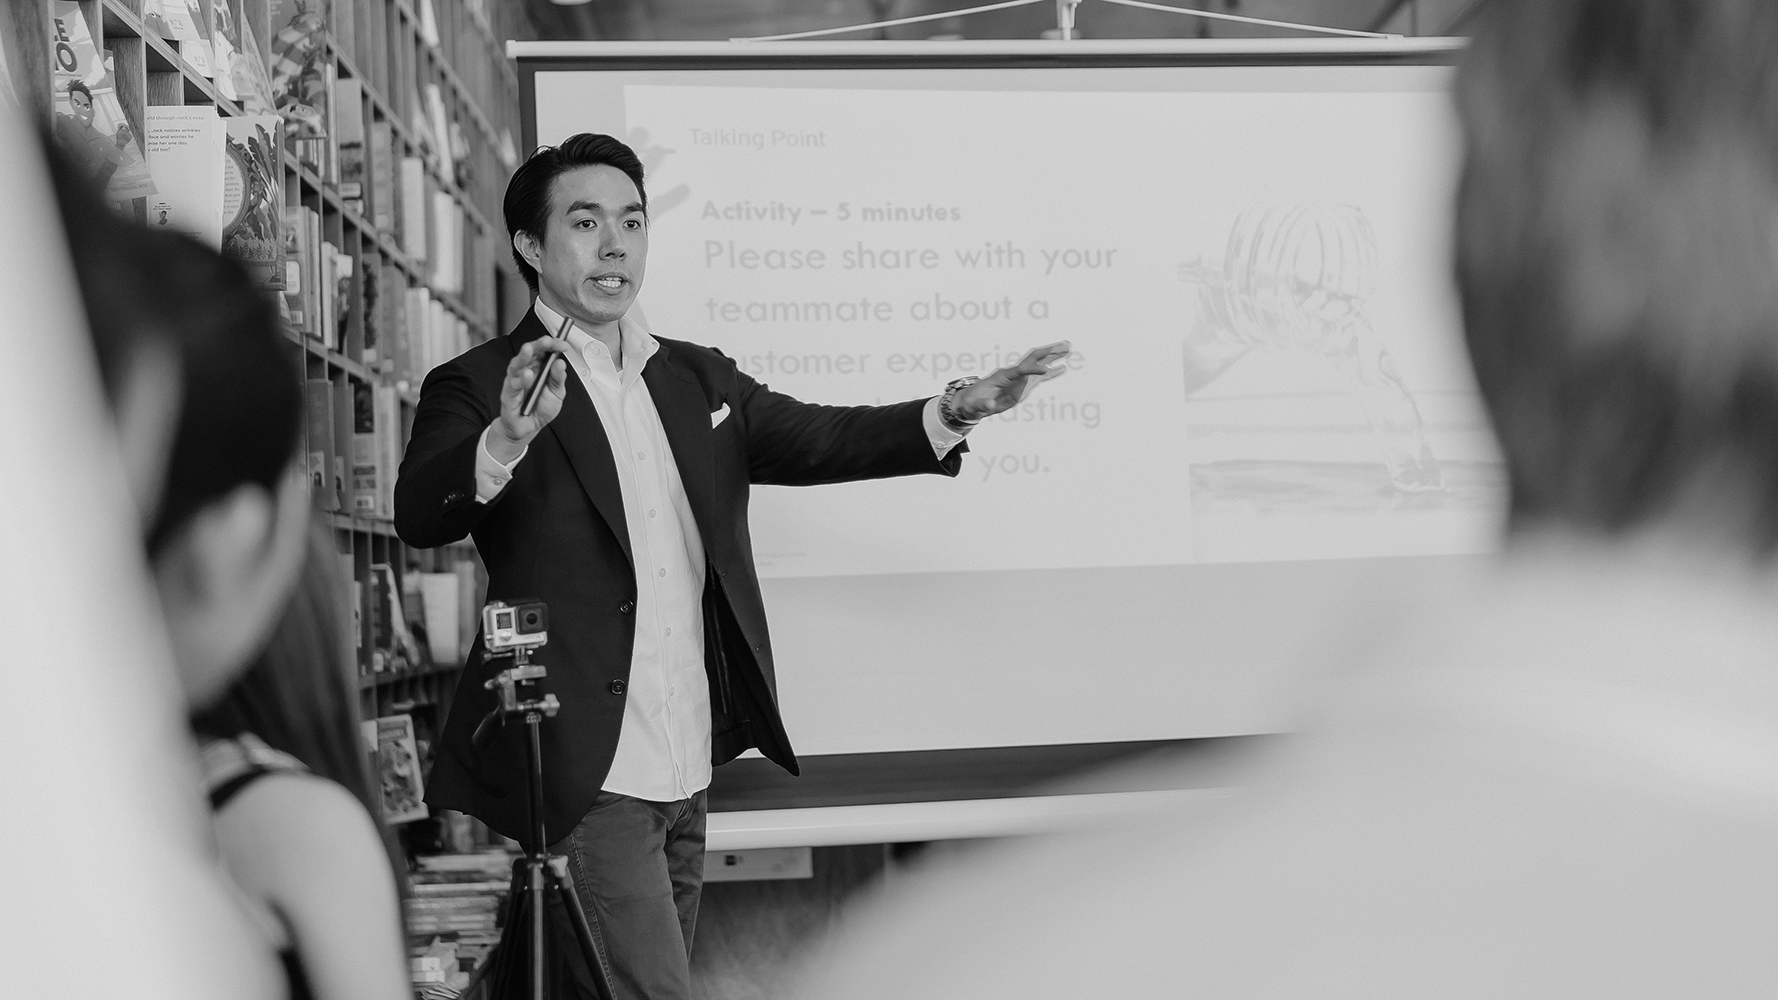 Finding the Right Public Speaking Style for Your Presentation